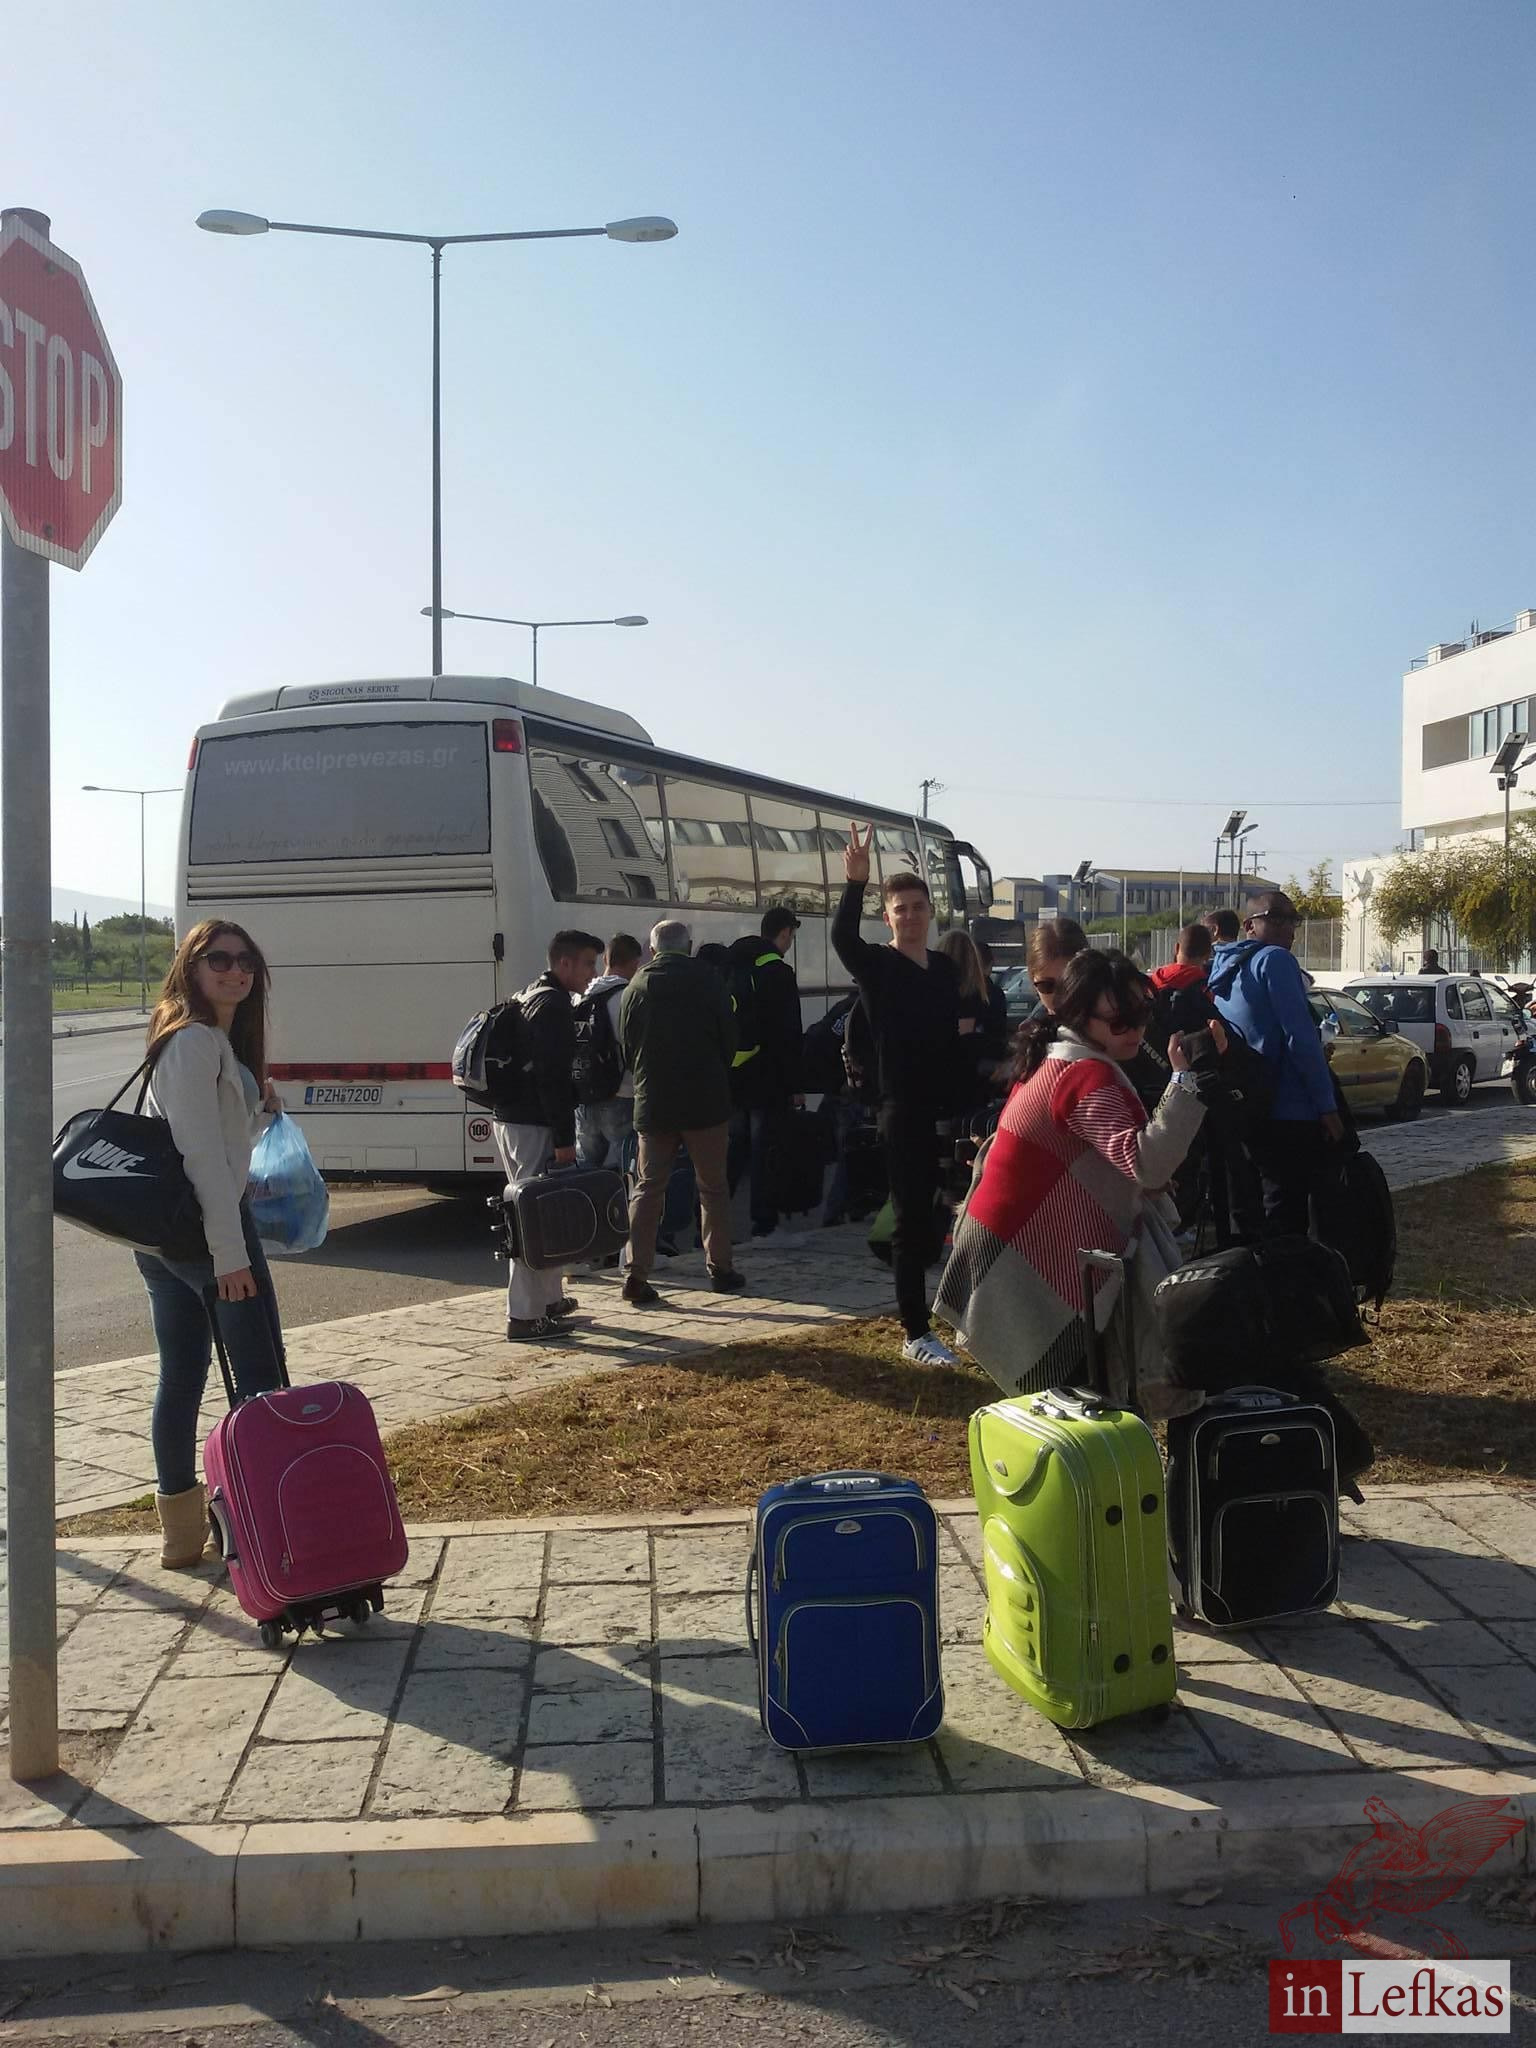 EPAL - Lithuania, Bus, Journey, Excursion